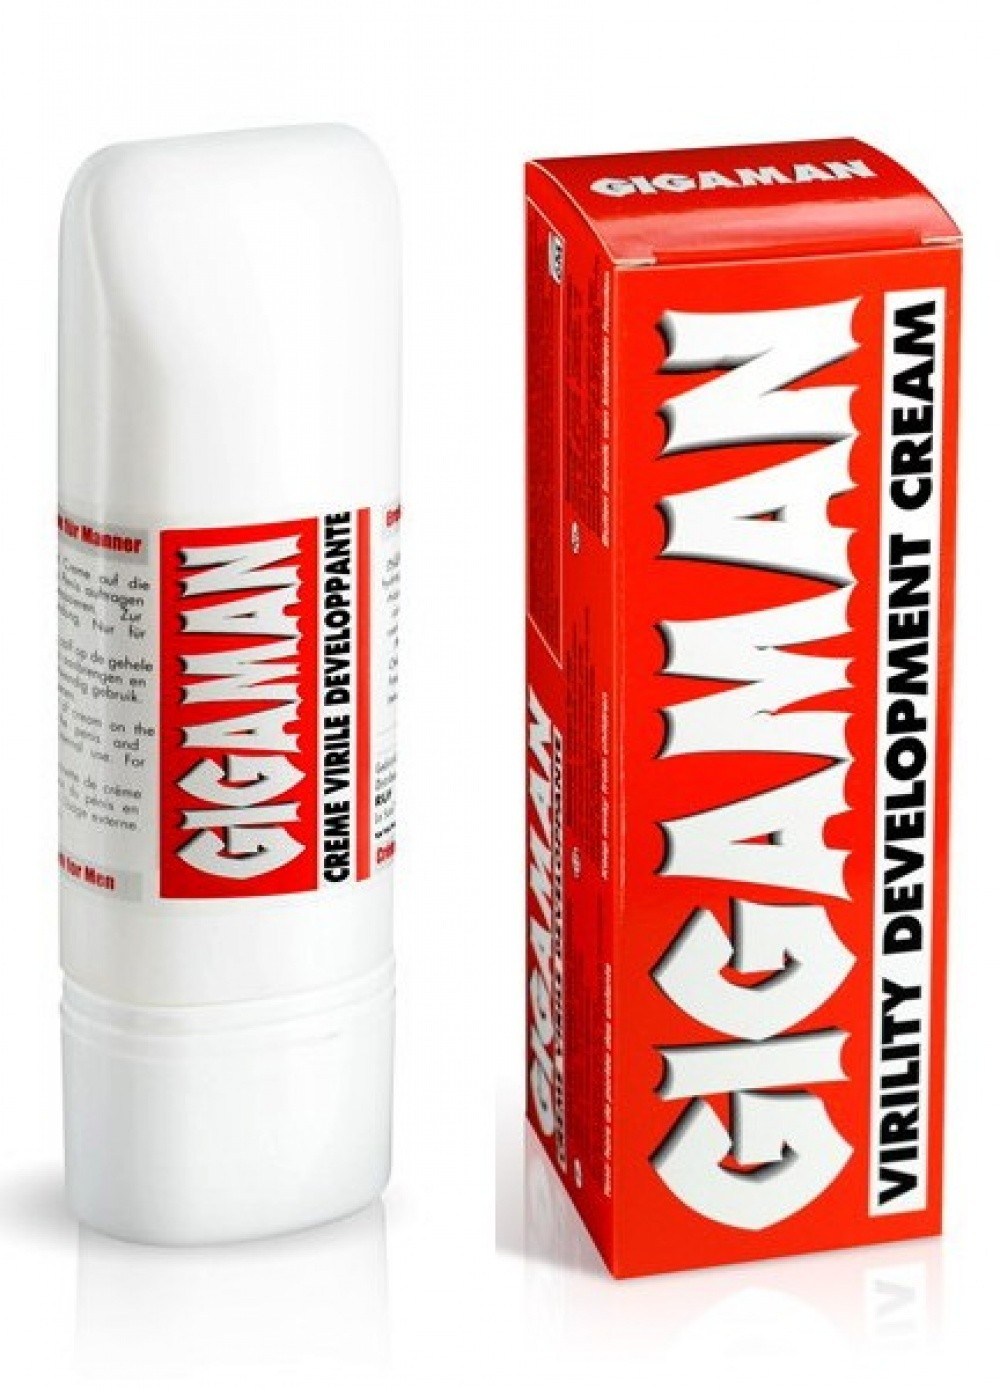 Creme pour homme Gigaman